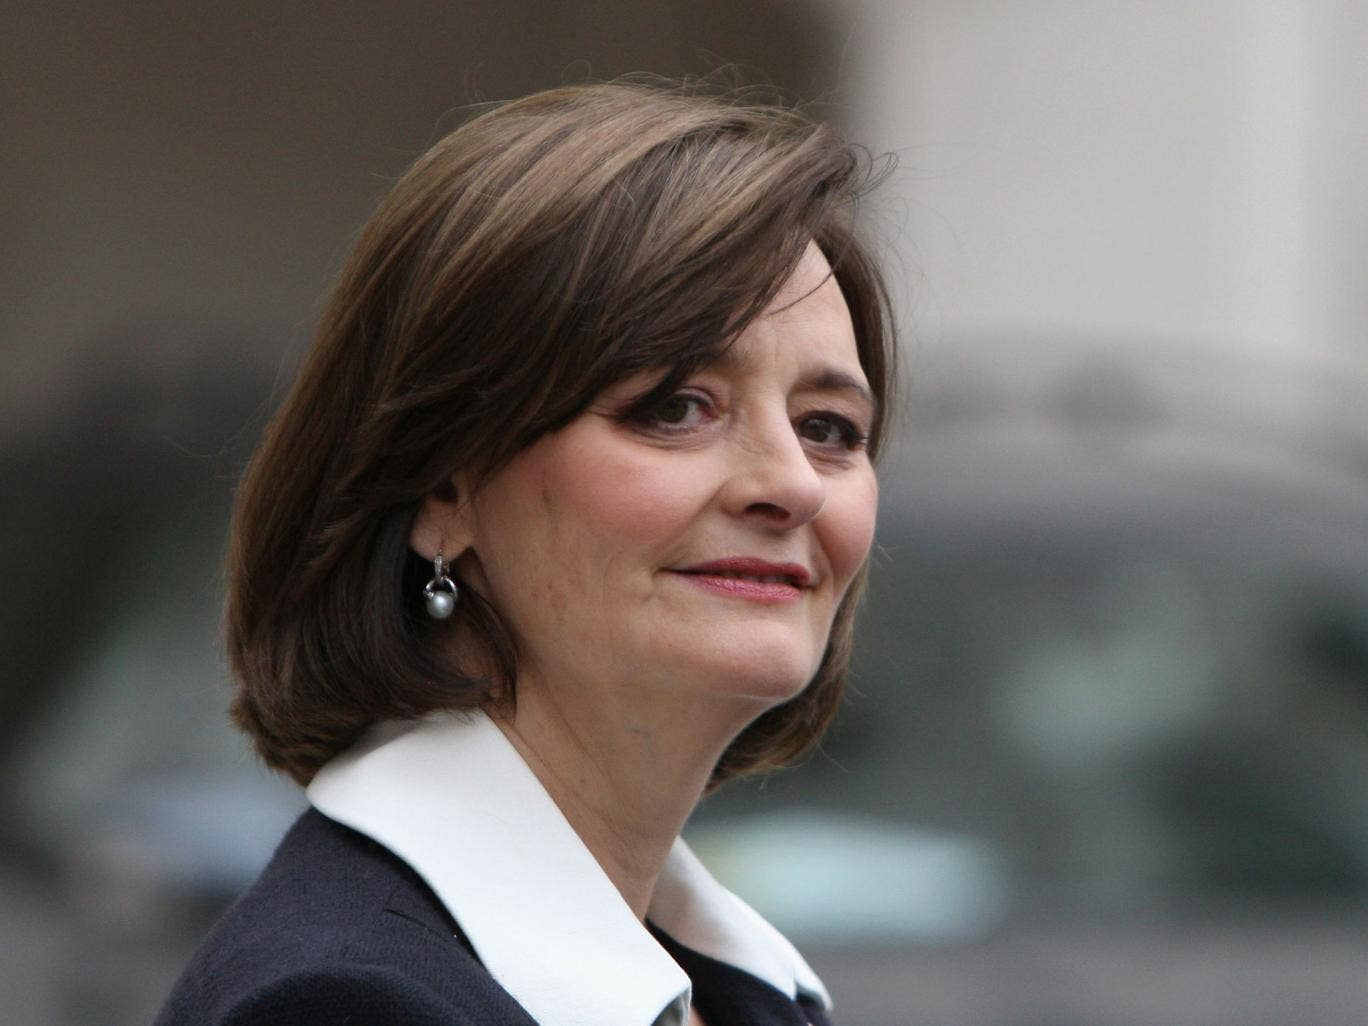 Cherie Blair says she is determined to achieve equality for women in the 21st century